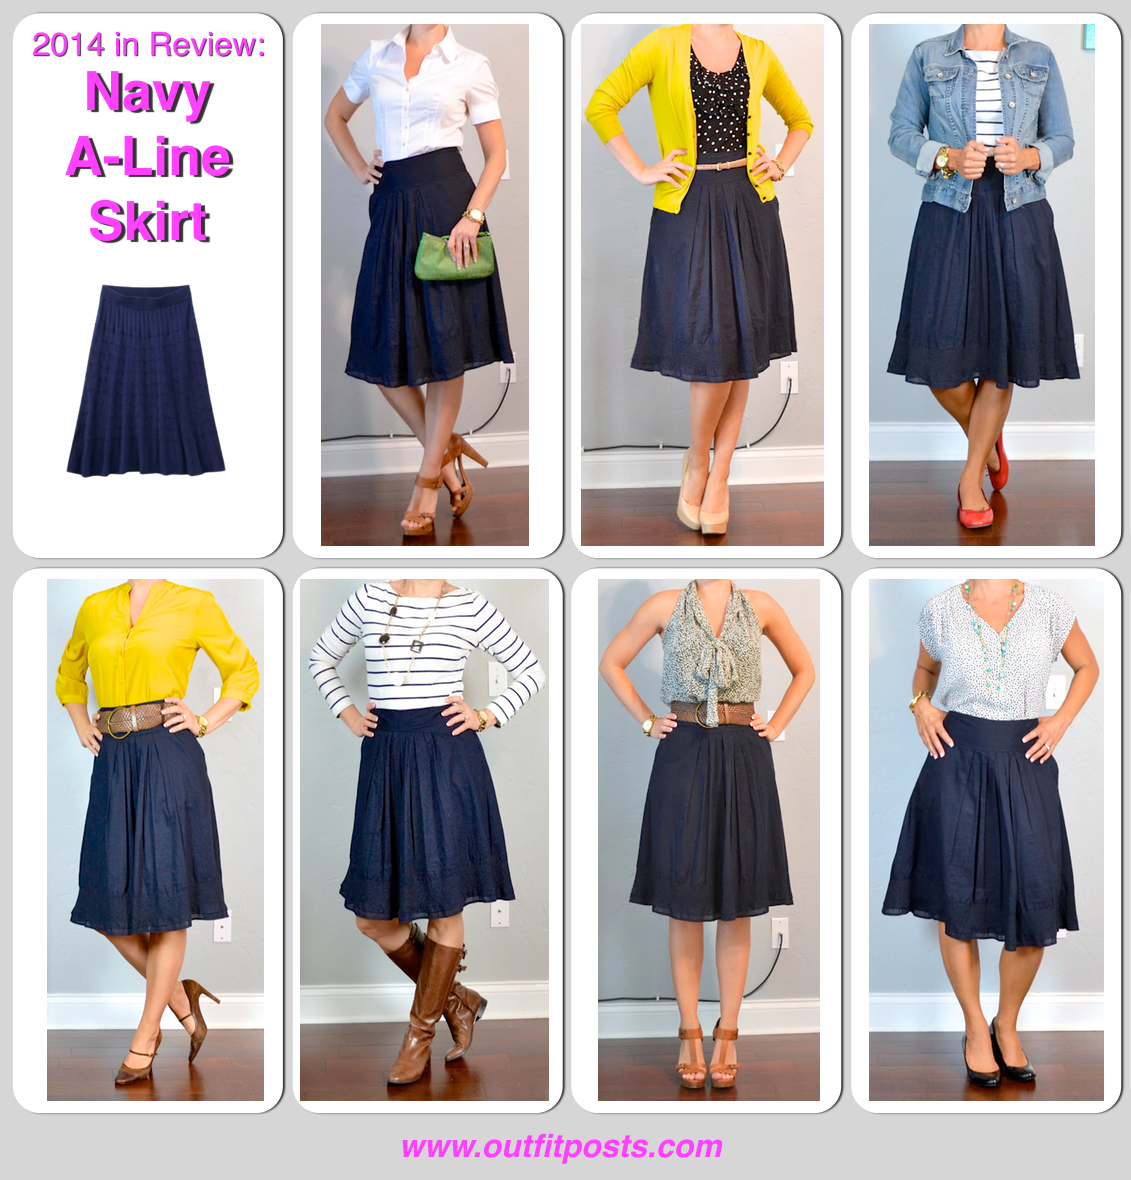 5 in review - outfit posts: navy a-line skirt - 5 ways  A line